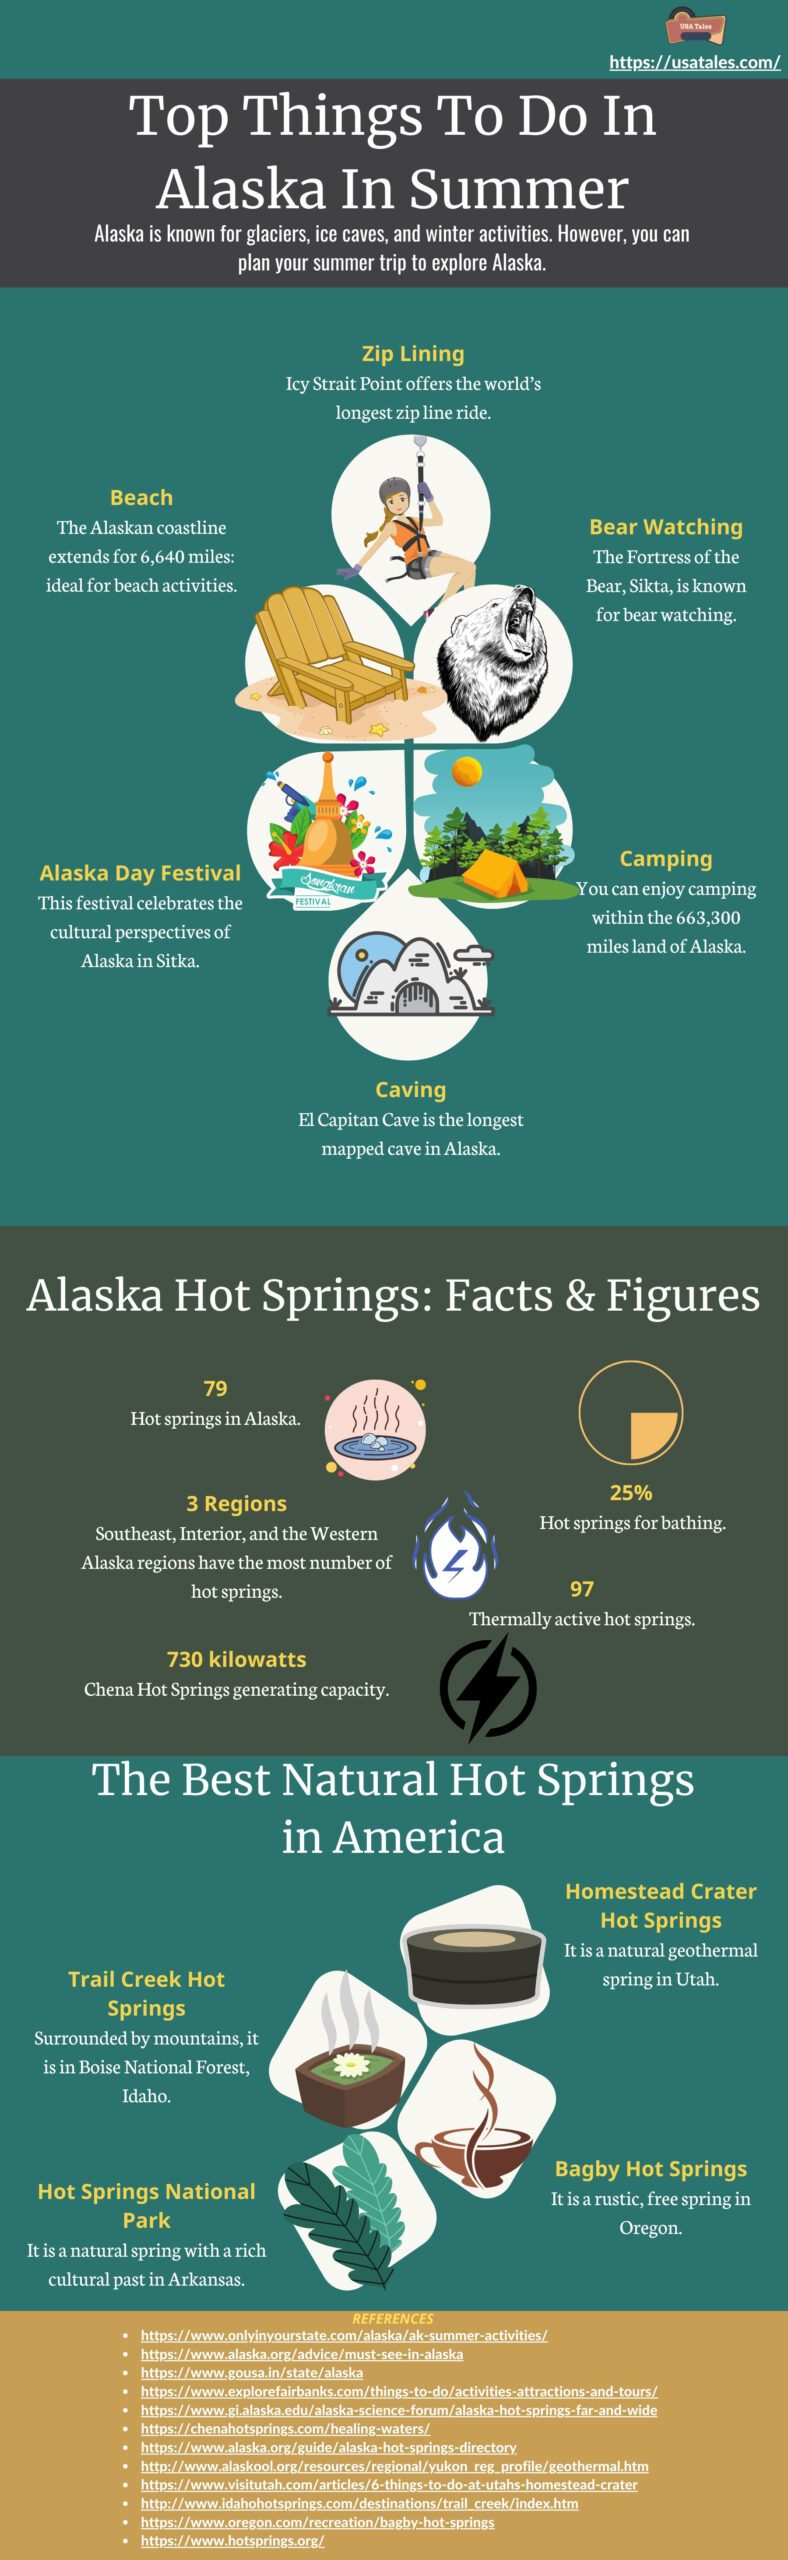 Top Things To Do In Alaska In Summer